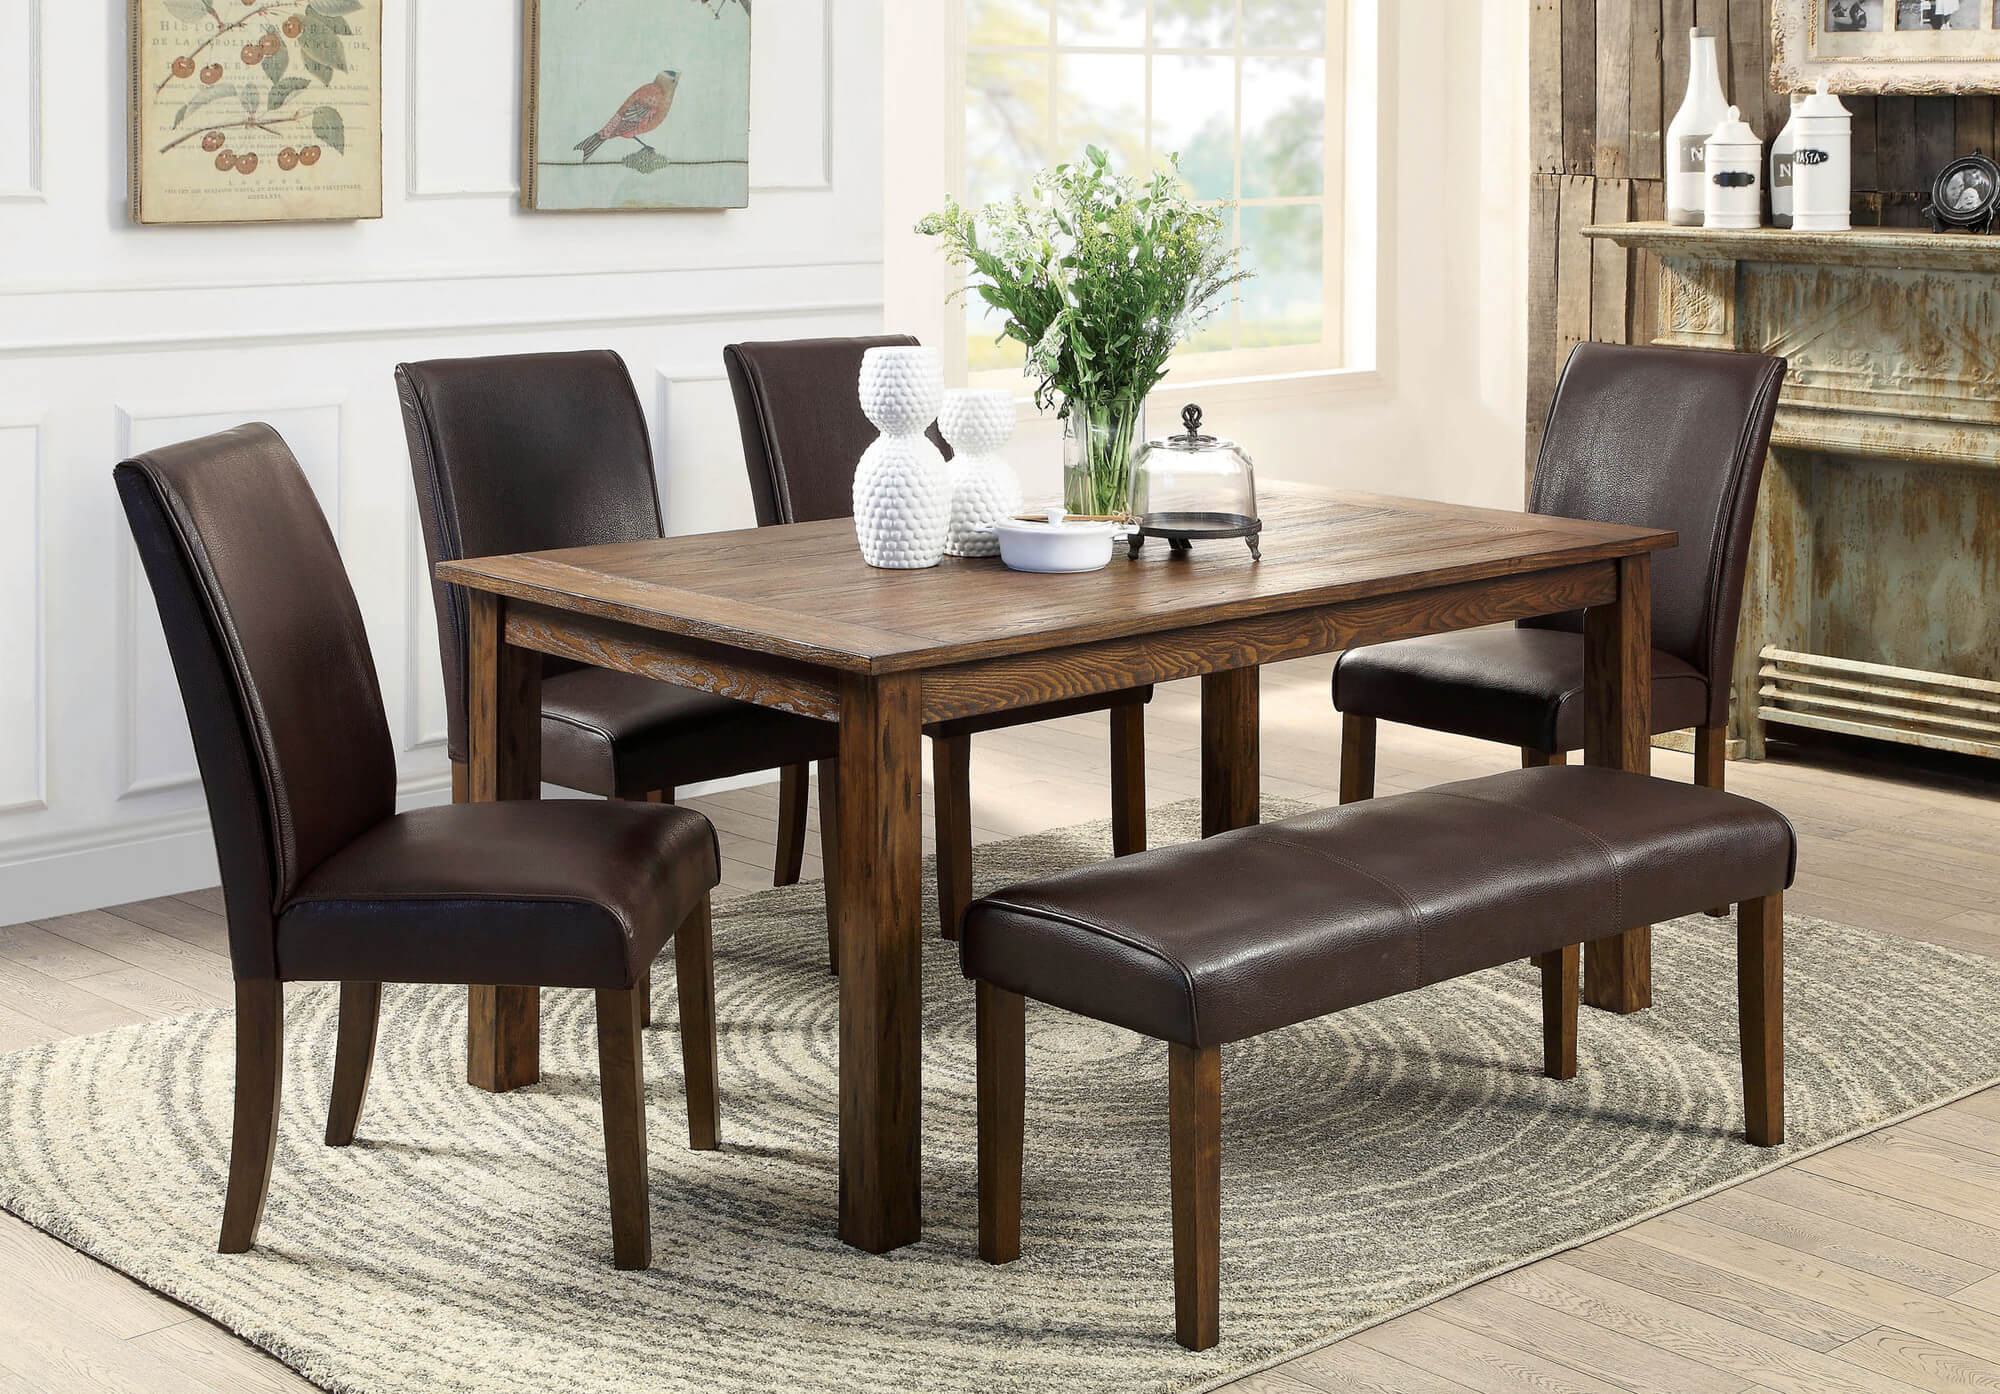 Modern Wood Dining Room Table 26 Big & Small Dining Room Sets With Bench Seating